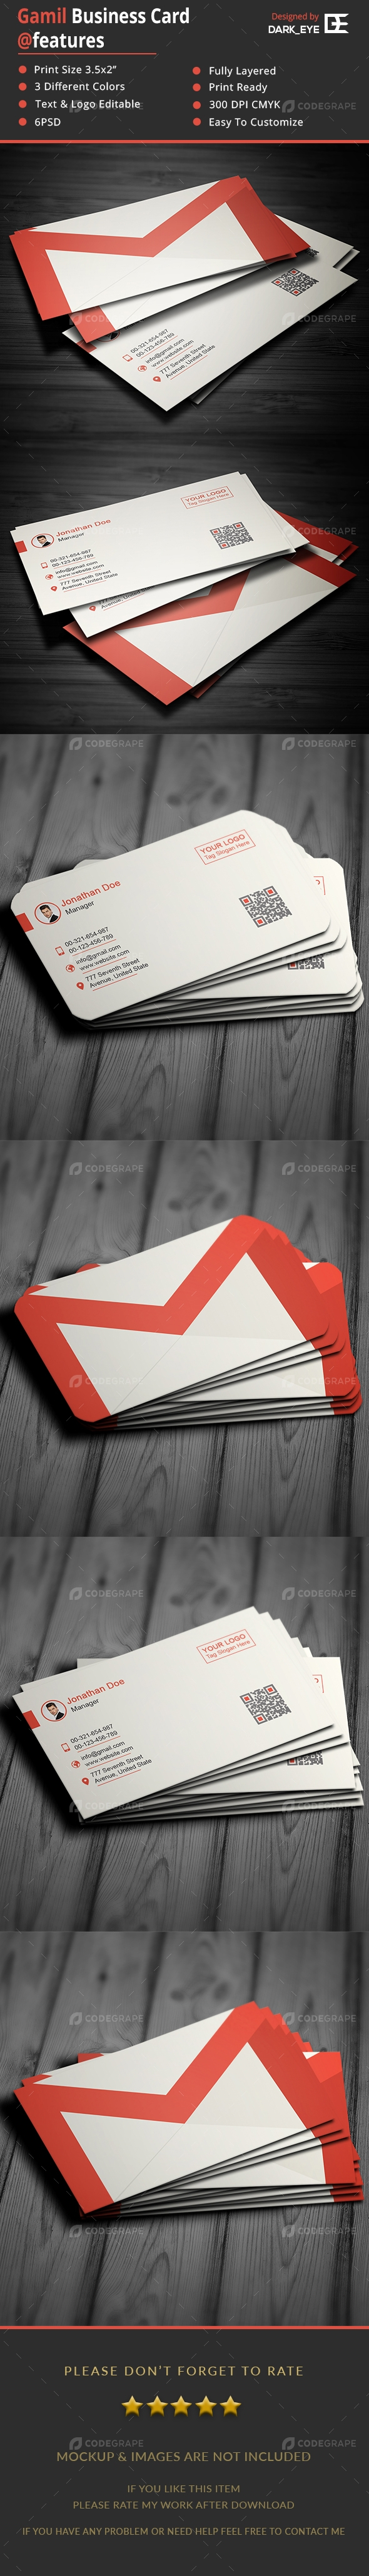 Gmail Business Card Vol.2